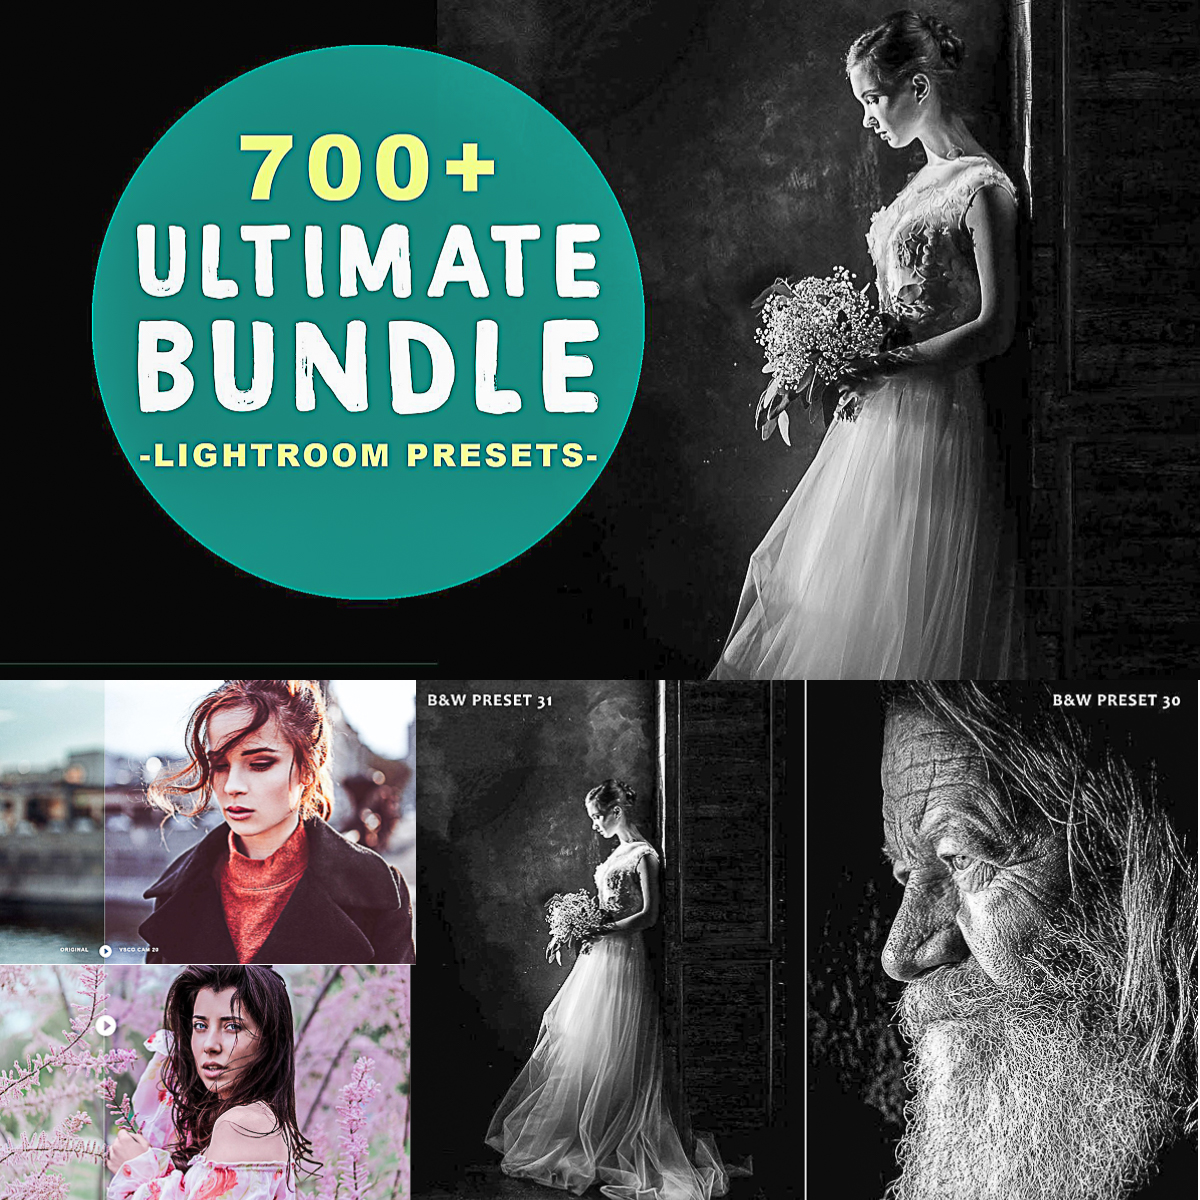 700 Ultimate Lightroom Presets Bundle | Free download